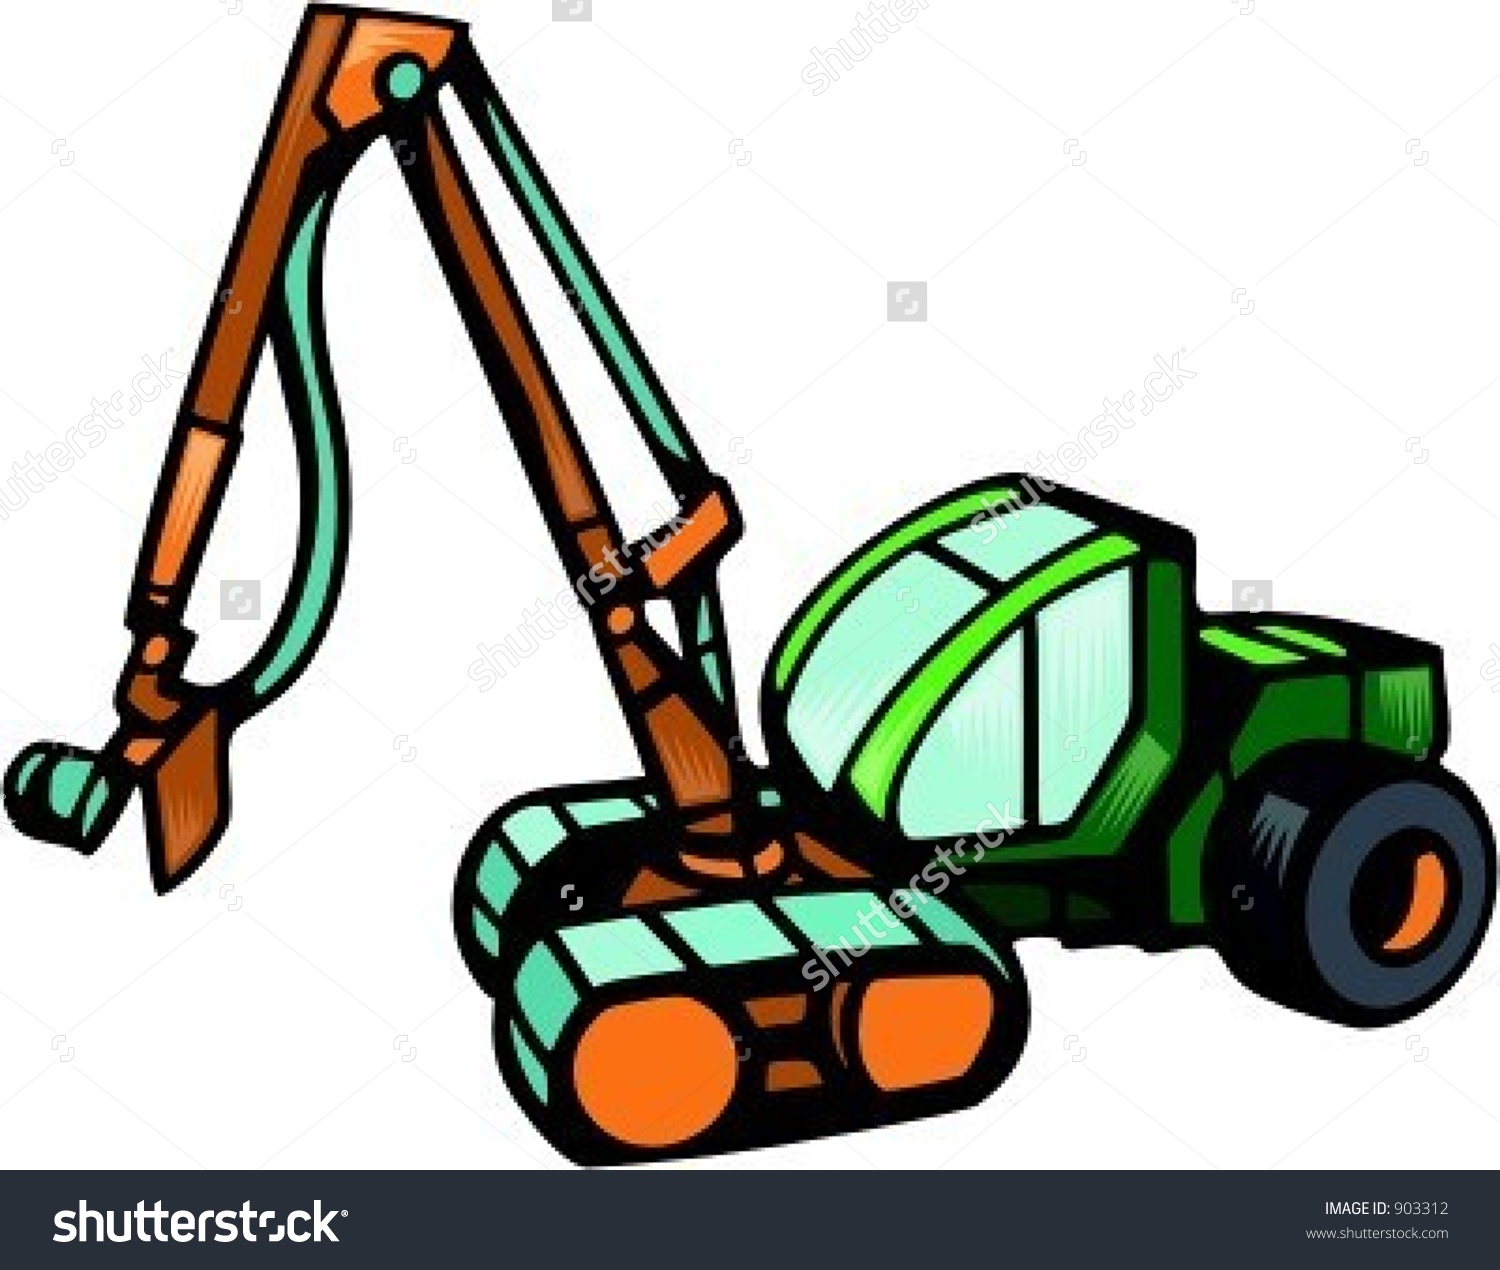 Wheeled Harvestervector Illustration Stock Vector 903312.